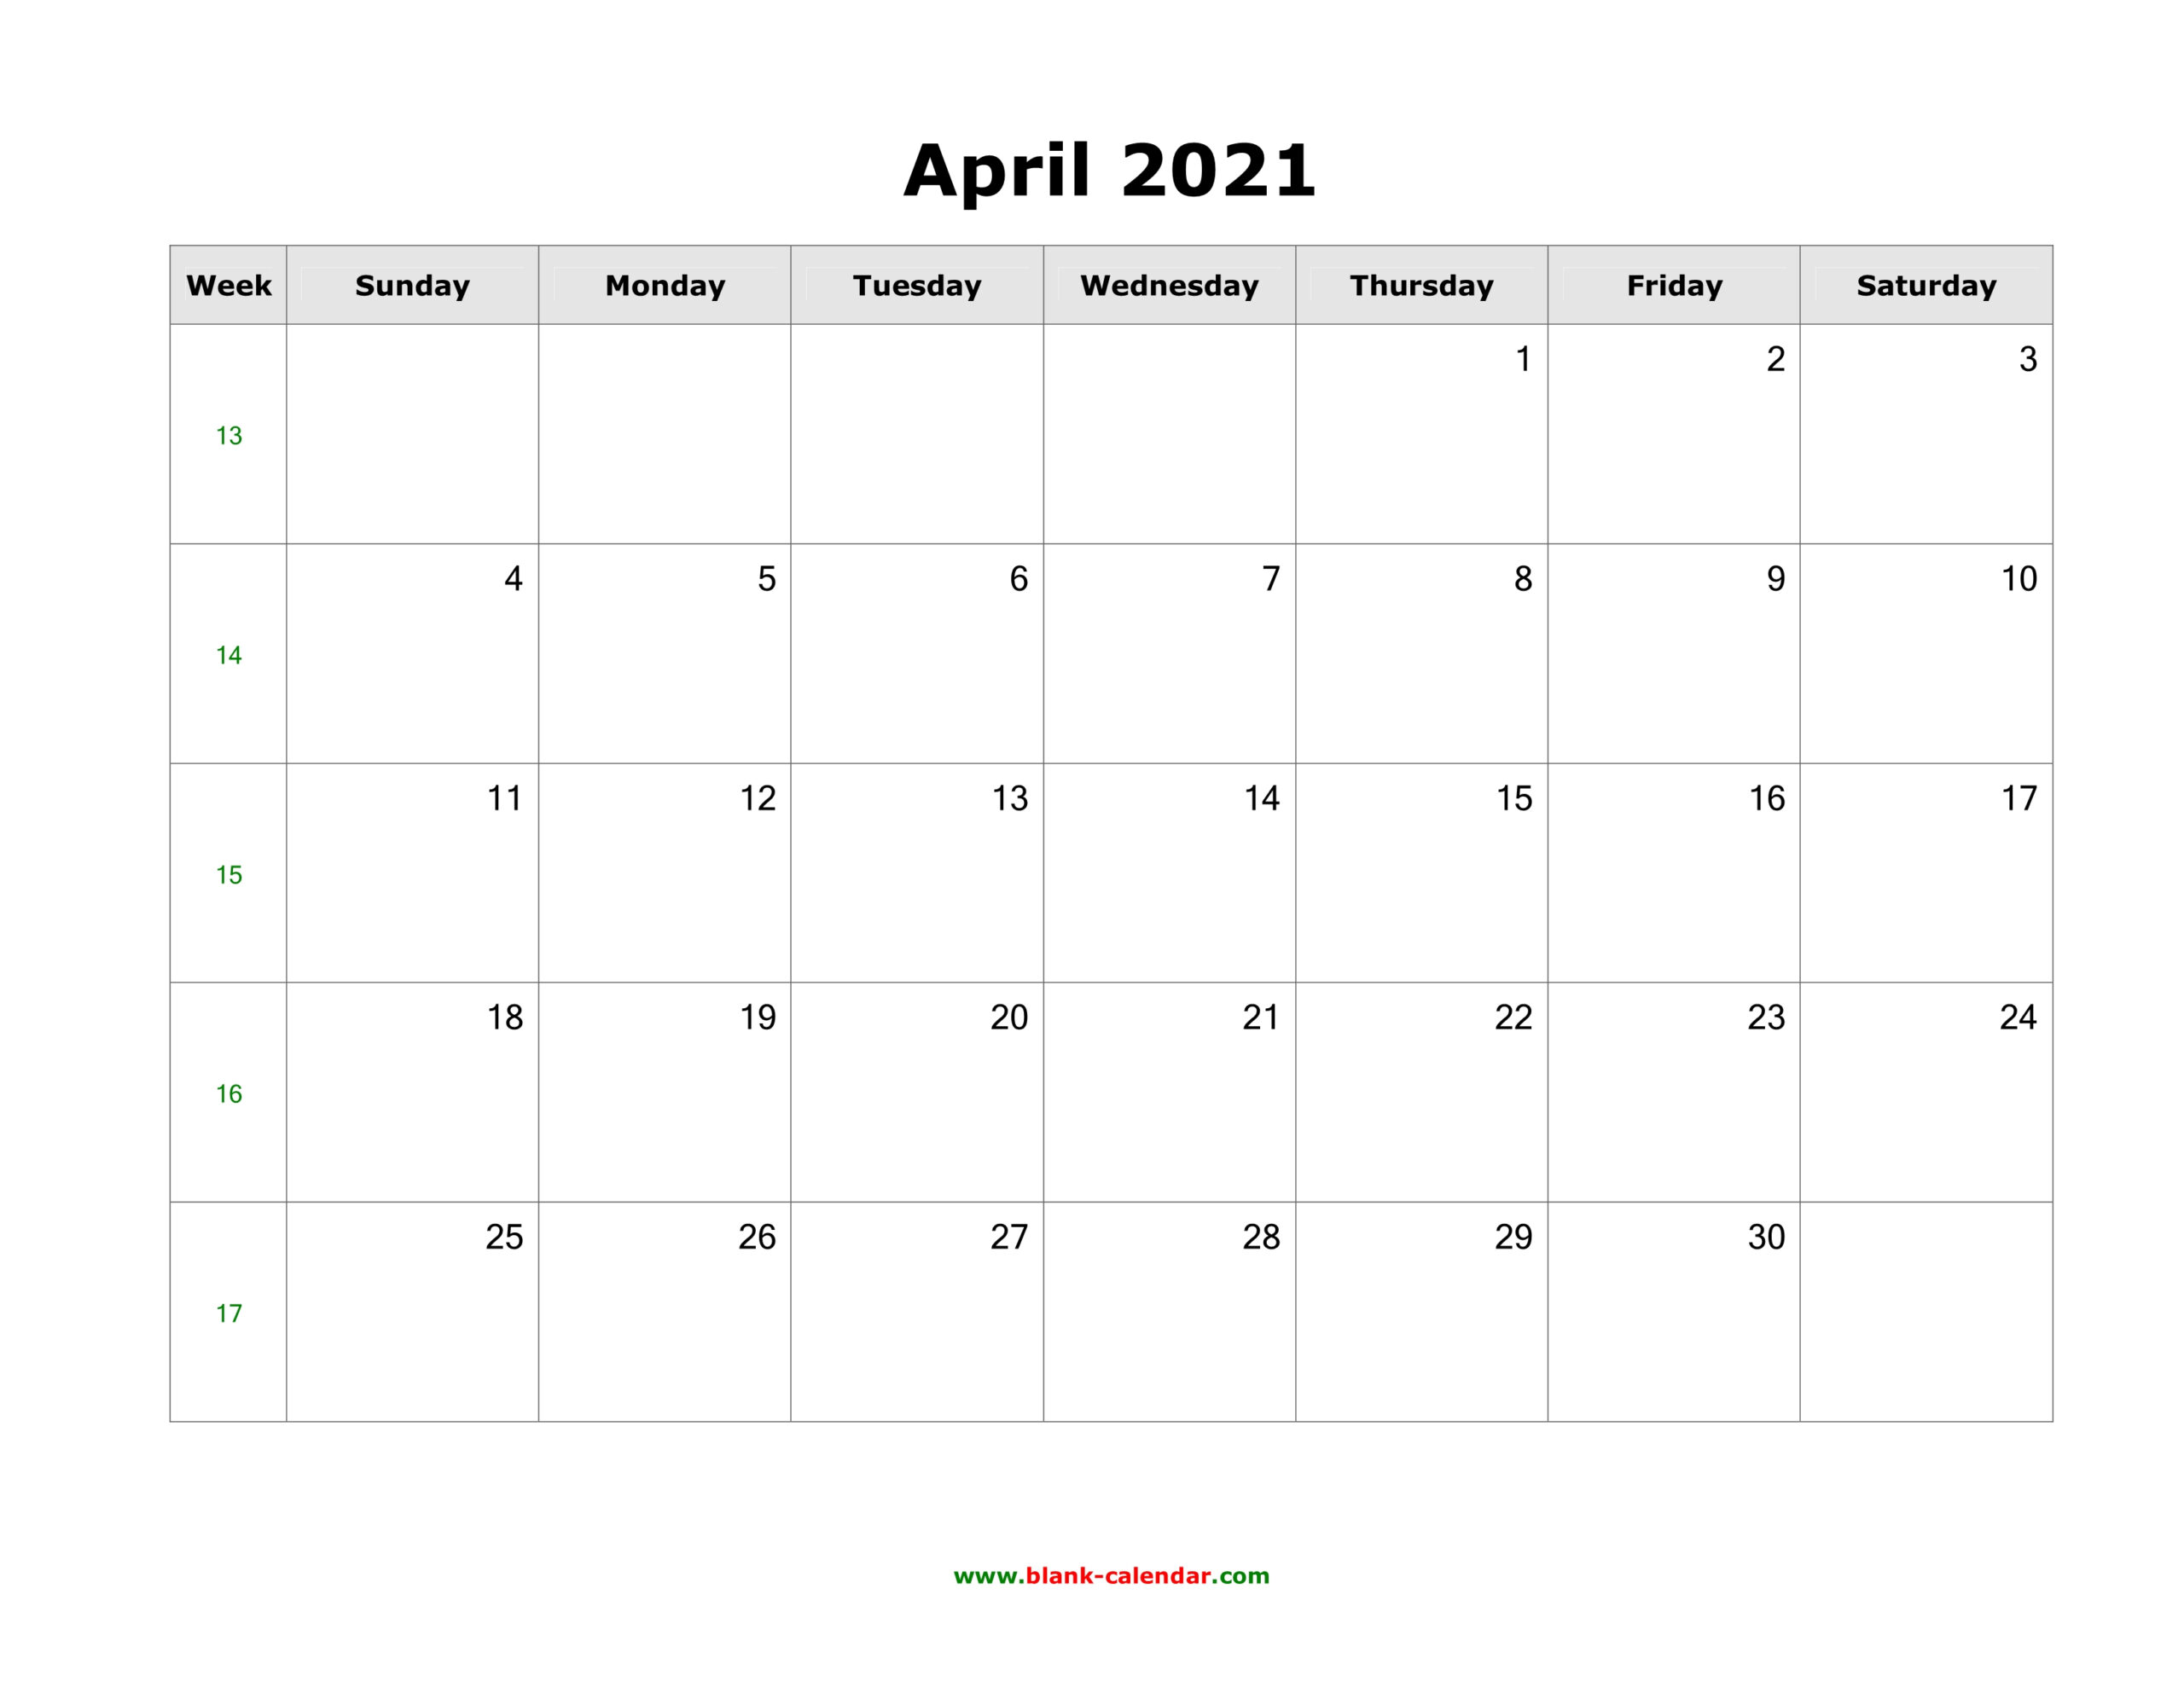 Download April 2021 Blank Calendar (Horizontal)